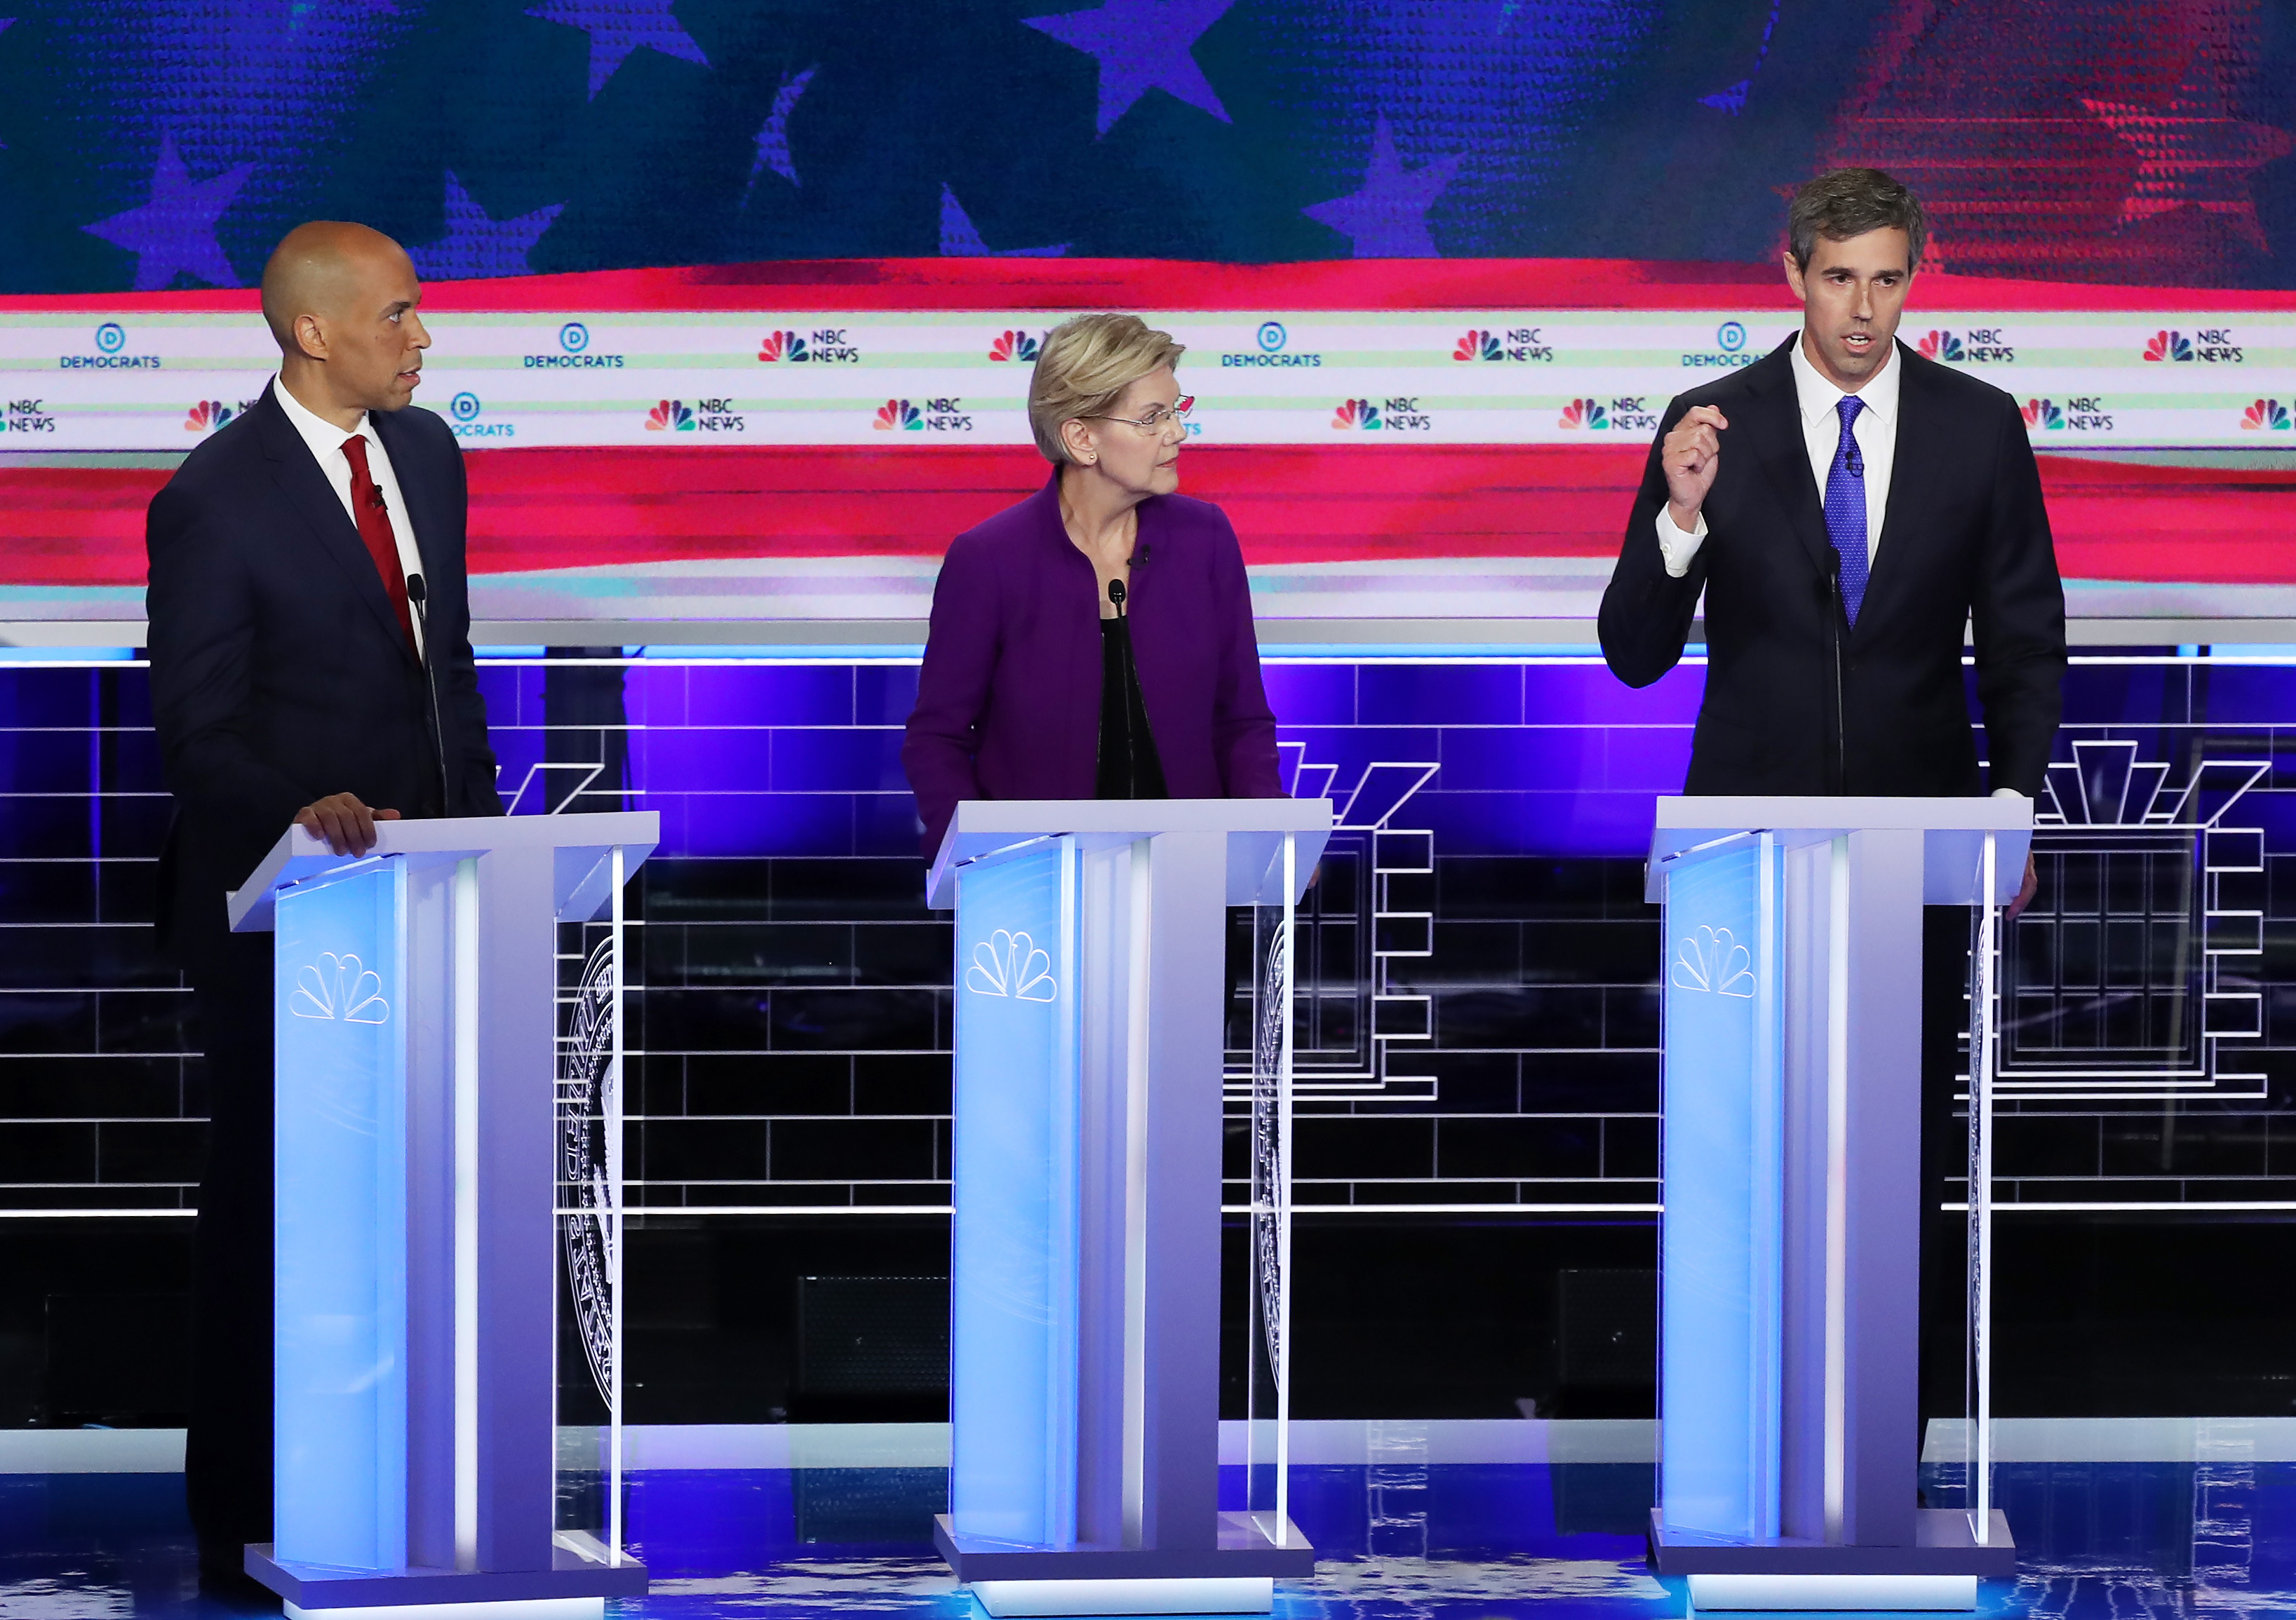 MIAMI, FLORIDA - JUNE 26: Former Texas congressman Beto O'Rourke (R) speaks as Sen. Cory Booker (D-NJ) and Sen. Elizabeth Warren (D-MA) look on during the first night of the Democratic presidential debate on June 26, 2019 in Miami, Florida. (Photo by Joe Raedle/Getty Images)